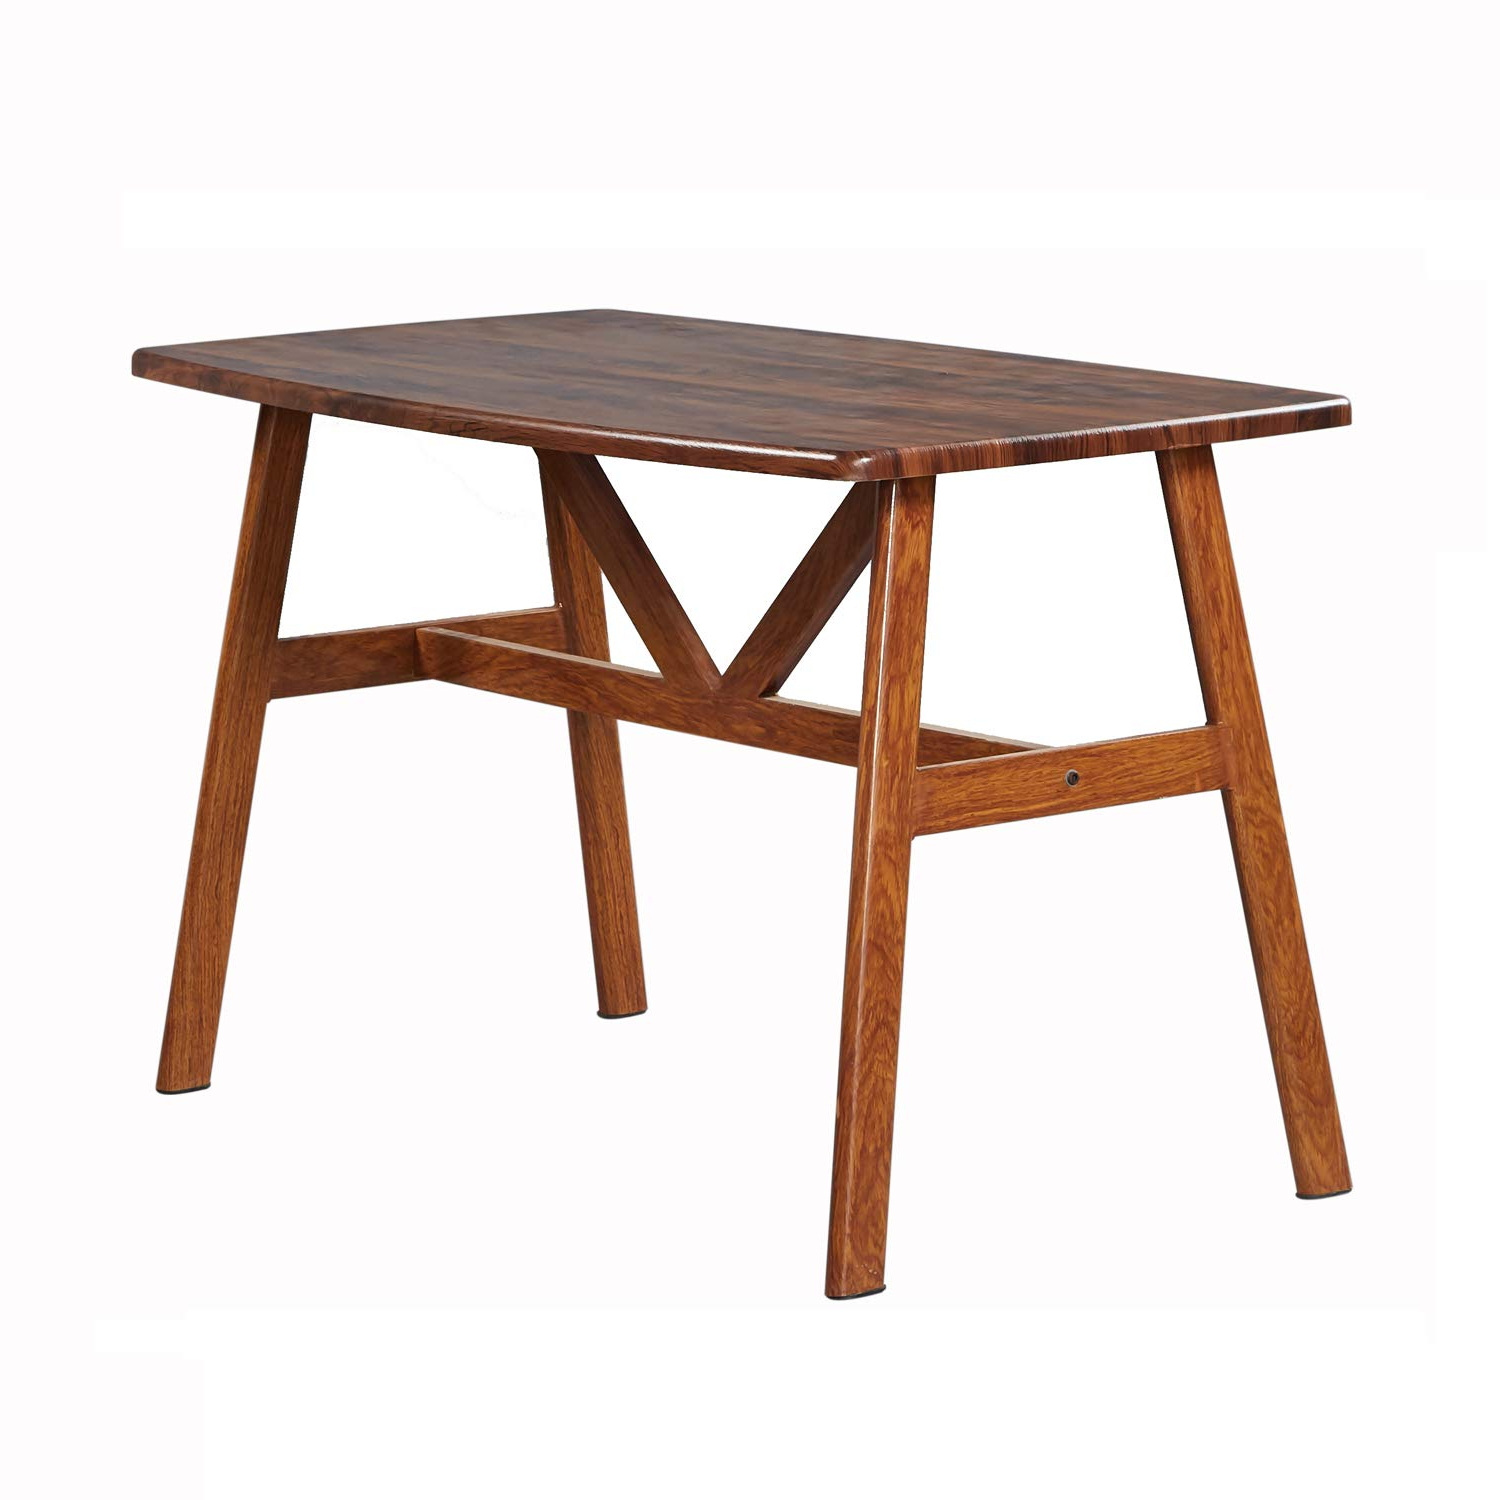 """Mid Century Rectangular Top Dining Tables With Wood Legs Within Favorite Greenforest Dining Table Modern Wood Top With Metal Legs Dining Room Table 48"""" X 28"""" Walnut (View 24 of 25)"""